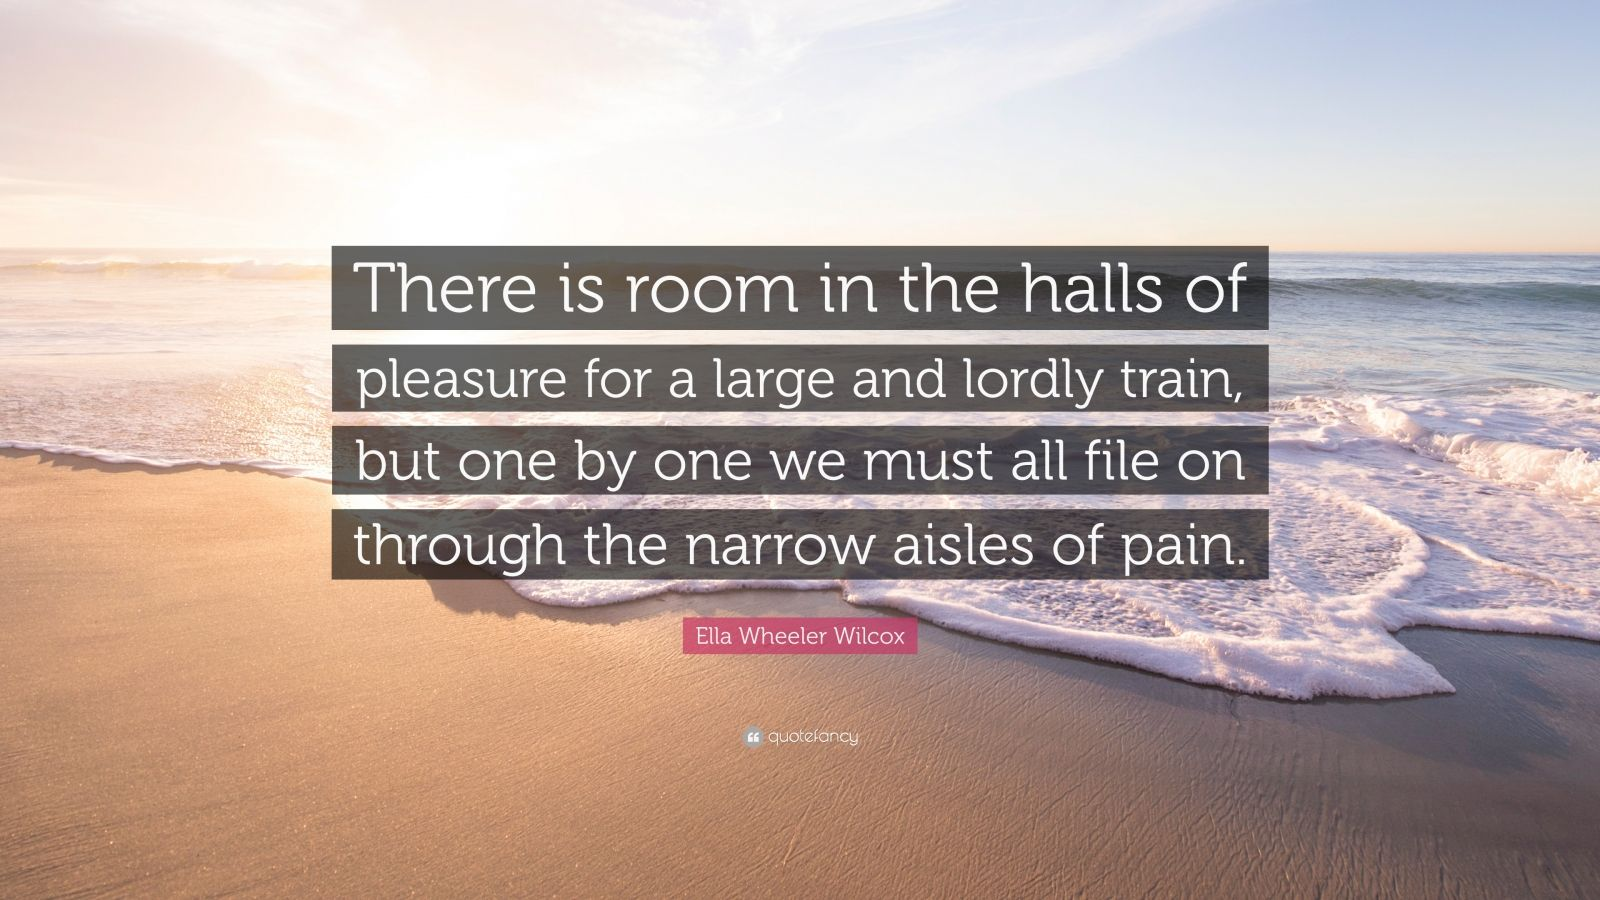 """Ella Wheeler Wilcox Quote: """"There is room in the halls of pleasure for a large and lordly train, but one by one we must all file on through the narrow aisles of pain."""""""